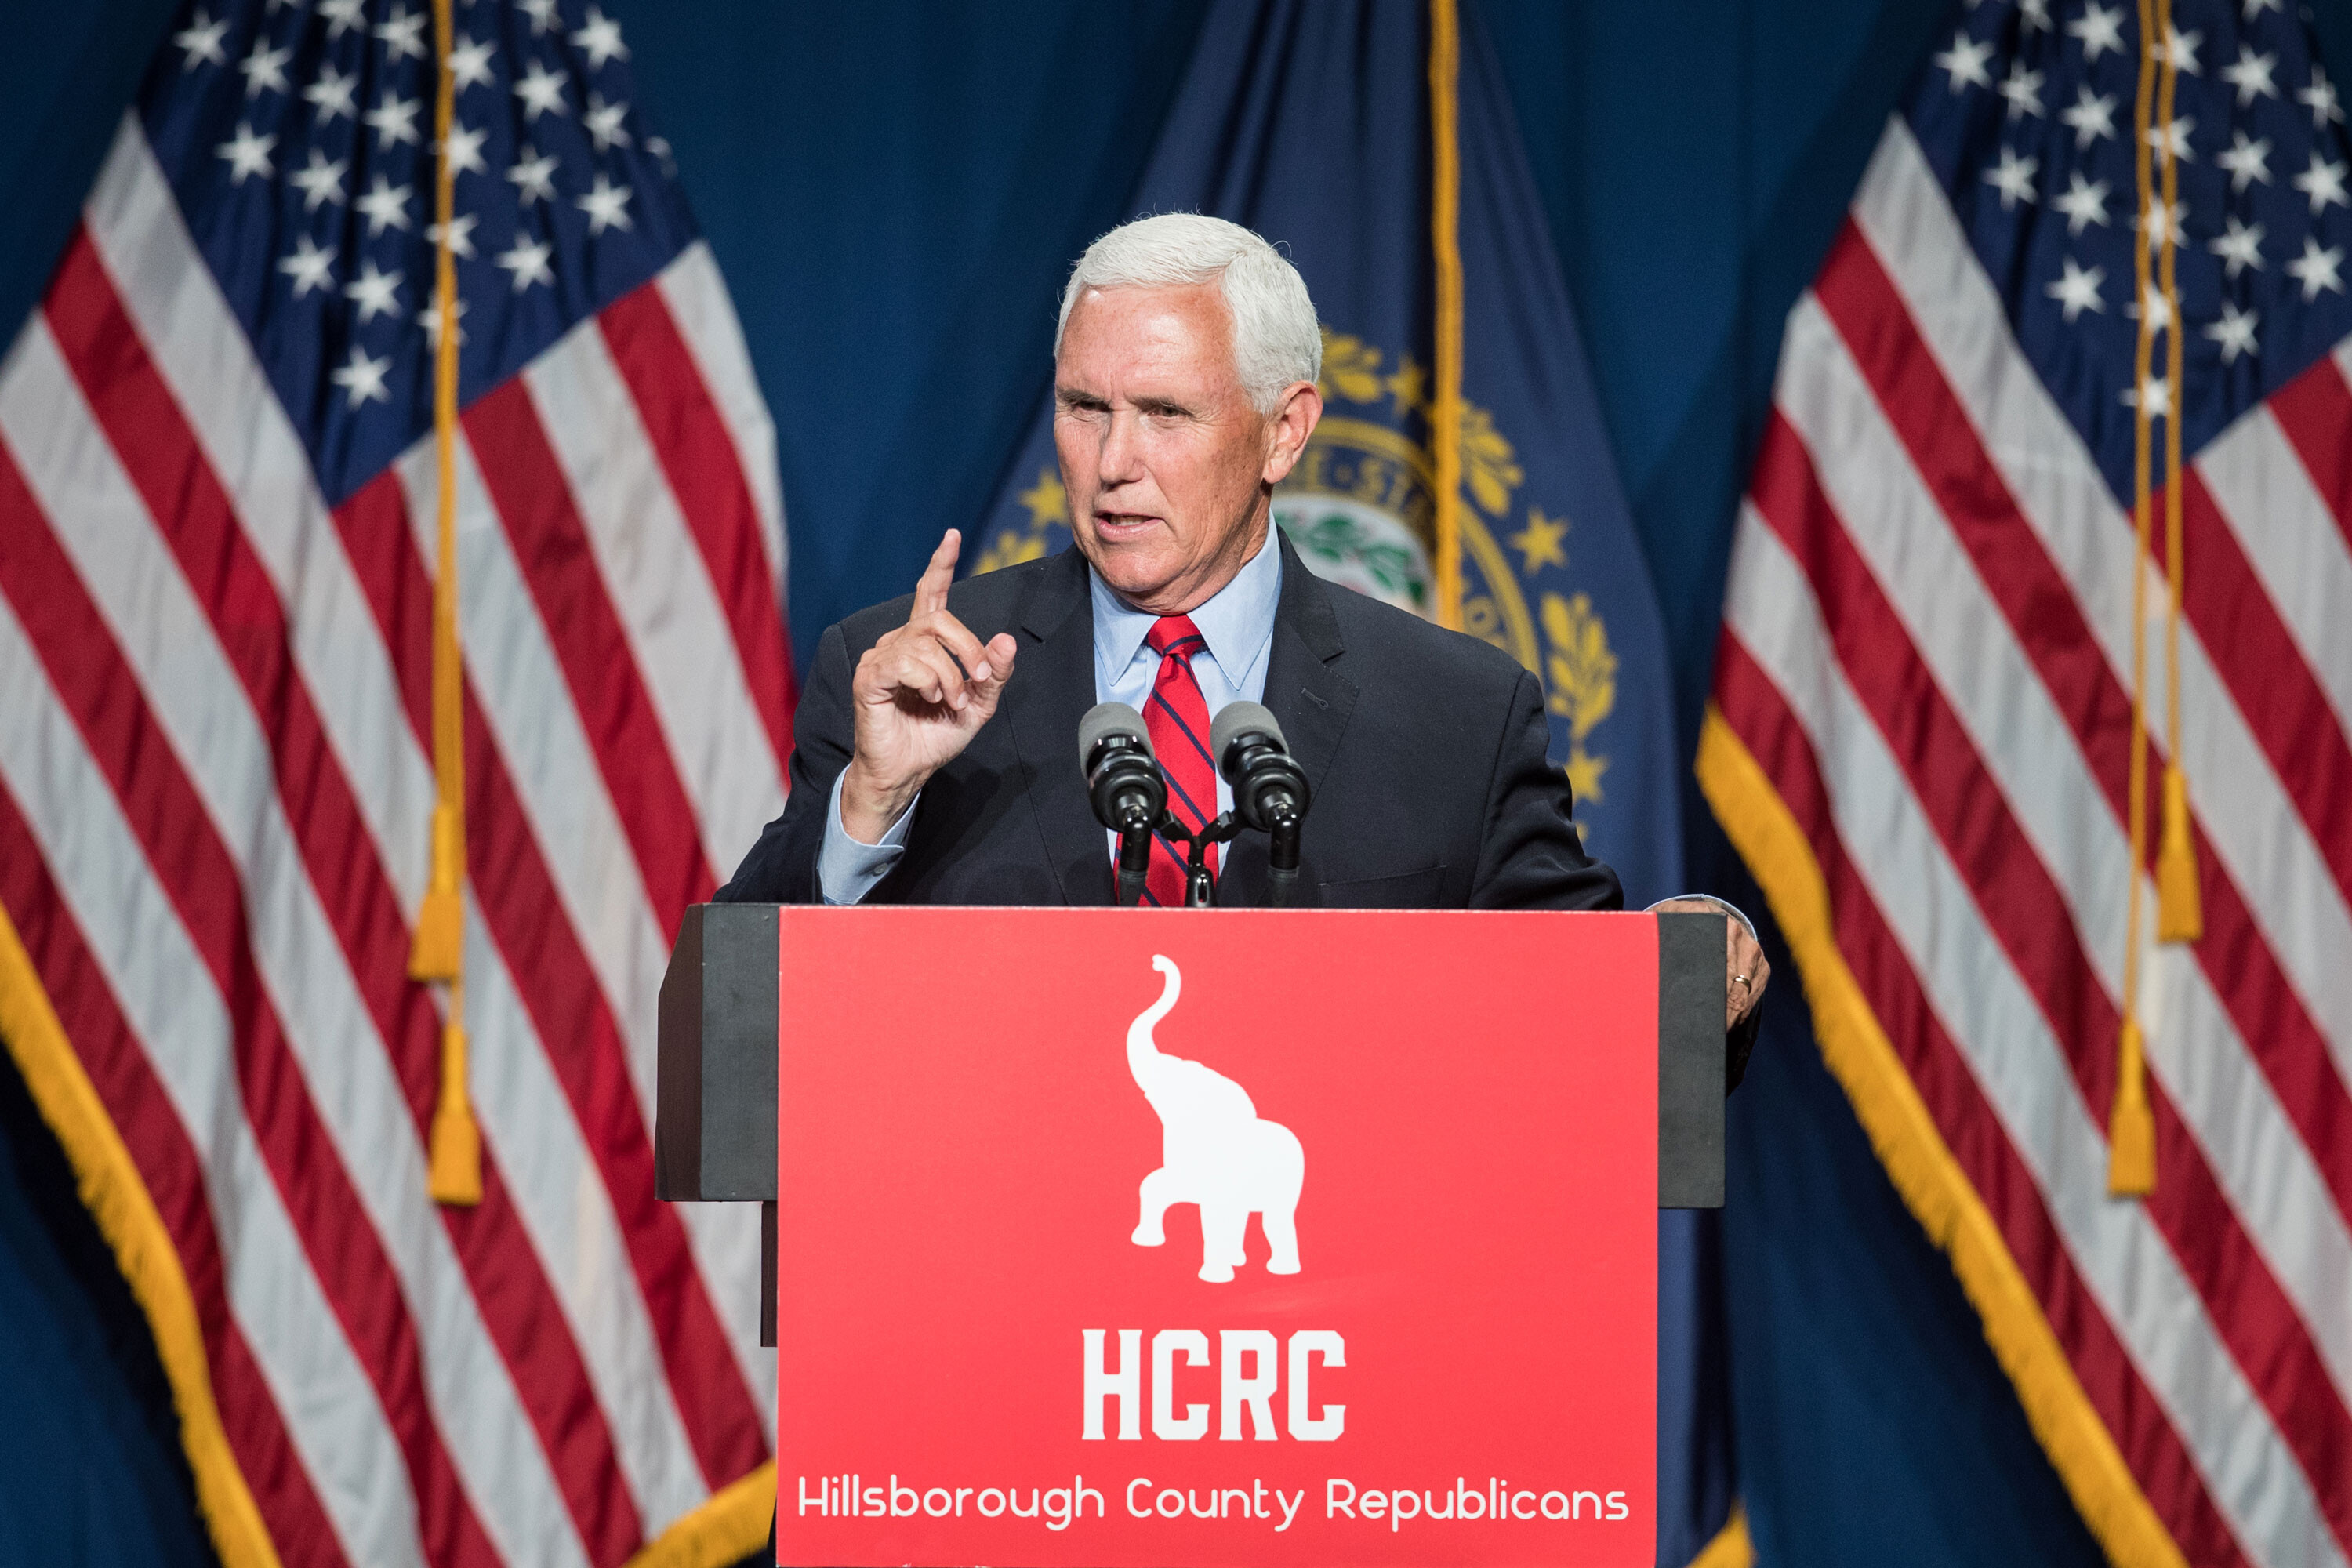 Pence preps for potential 2024 presidential run amid rocky headlines about relationship with Trump